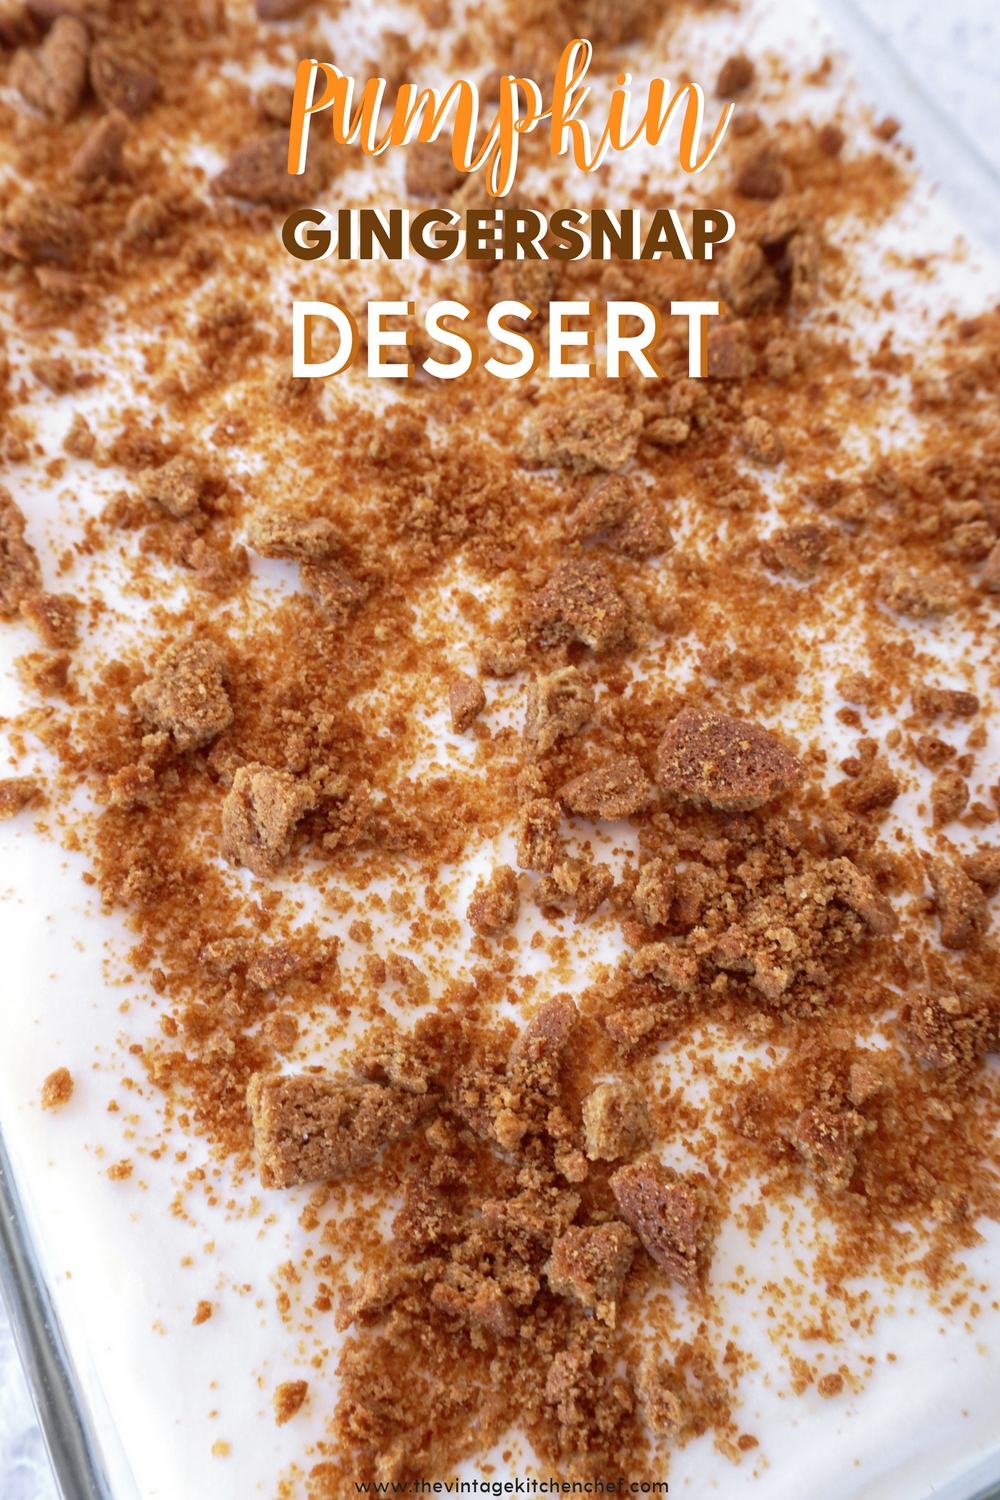 Gingersnap crust makes all the difference with this no-bake dessert. Layers of pumpkin spice cheesecake, pudding and whipped topping on a gingersnap crust.